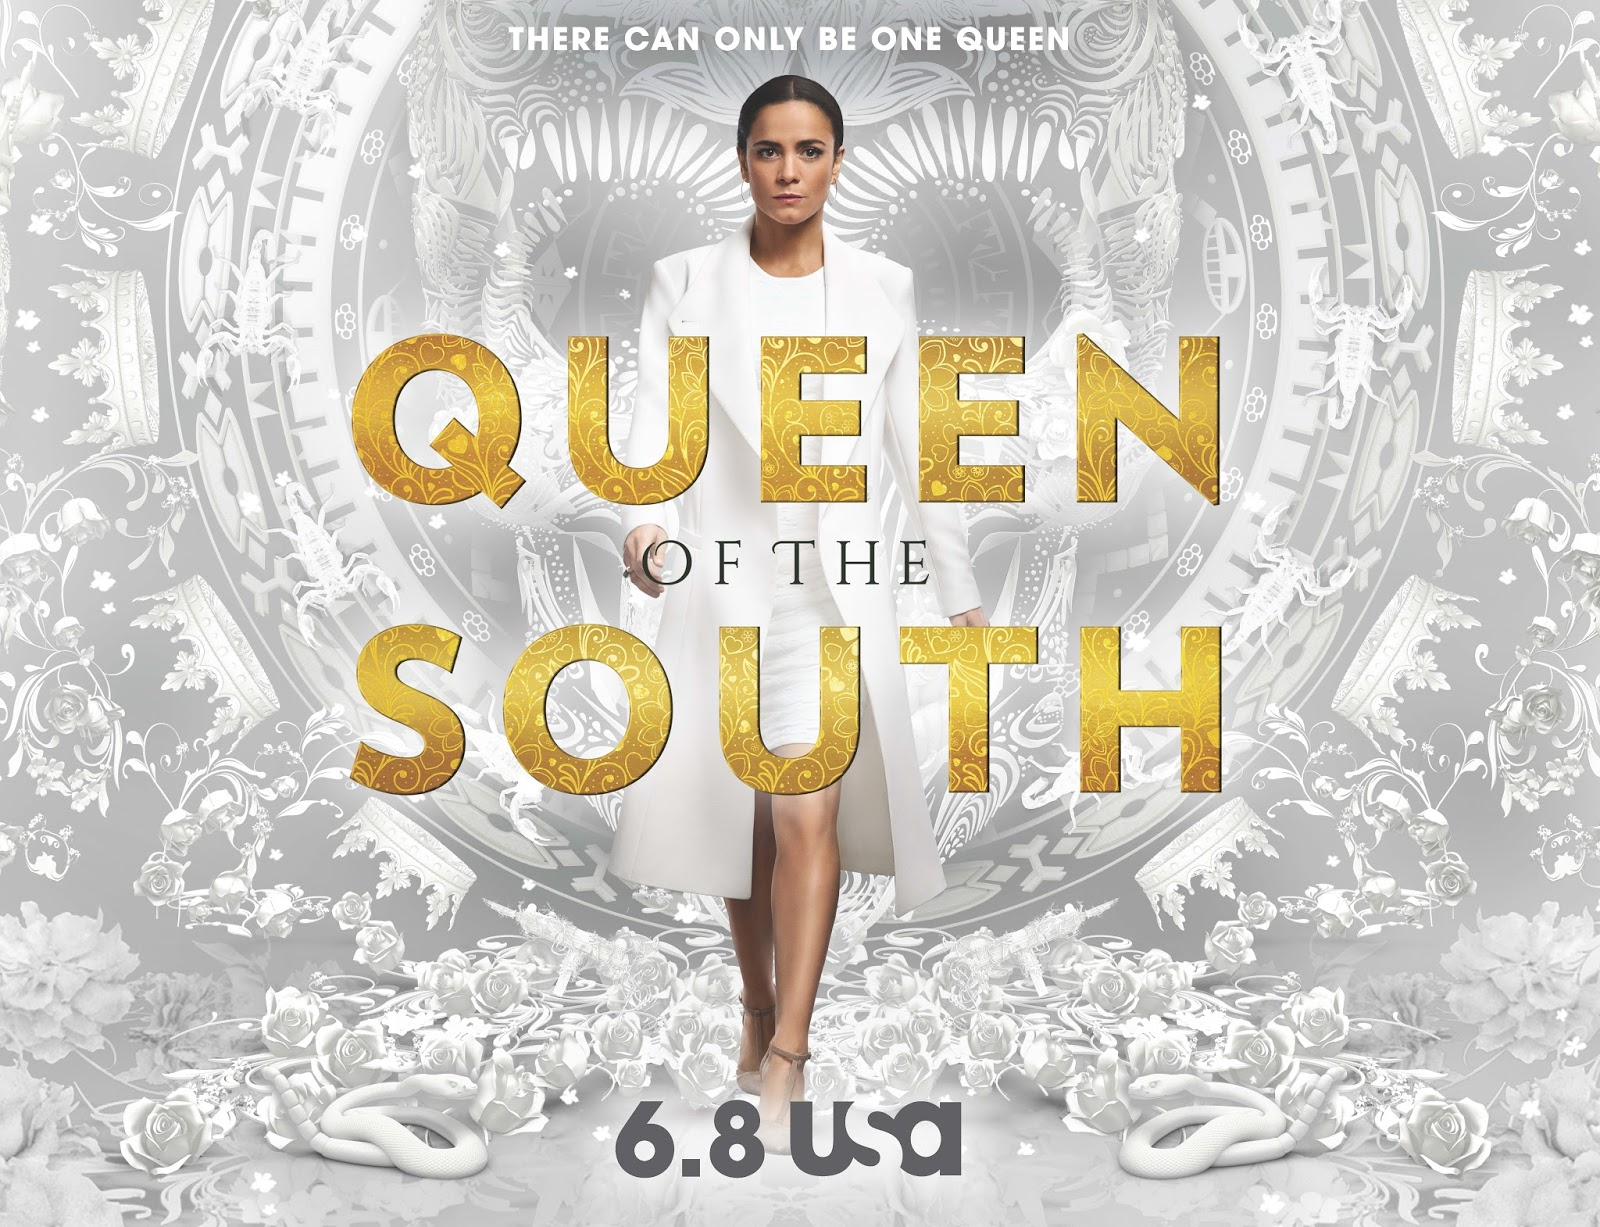 Queenpin Cocktails With Queen of the South + How To #Slay Your Dreams , queen of the south, usa network, teresa mendoza, tv shows, shows on usa, television, netflix orginials, watching tv